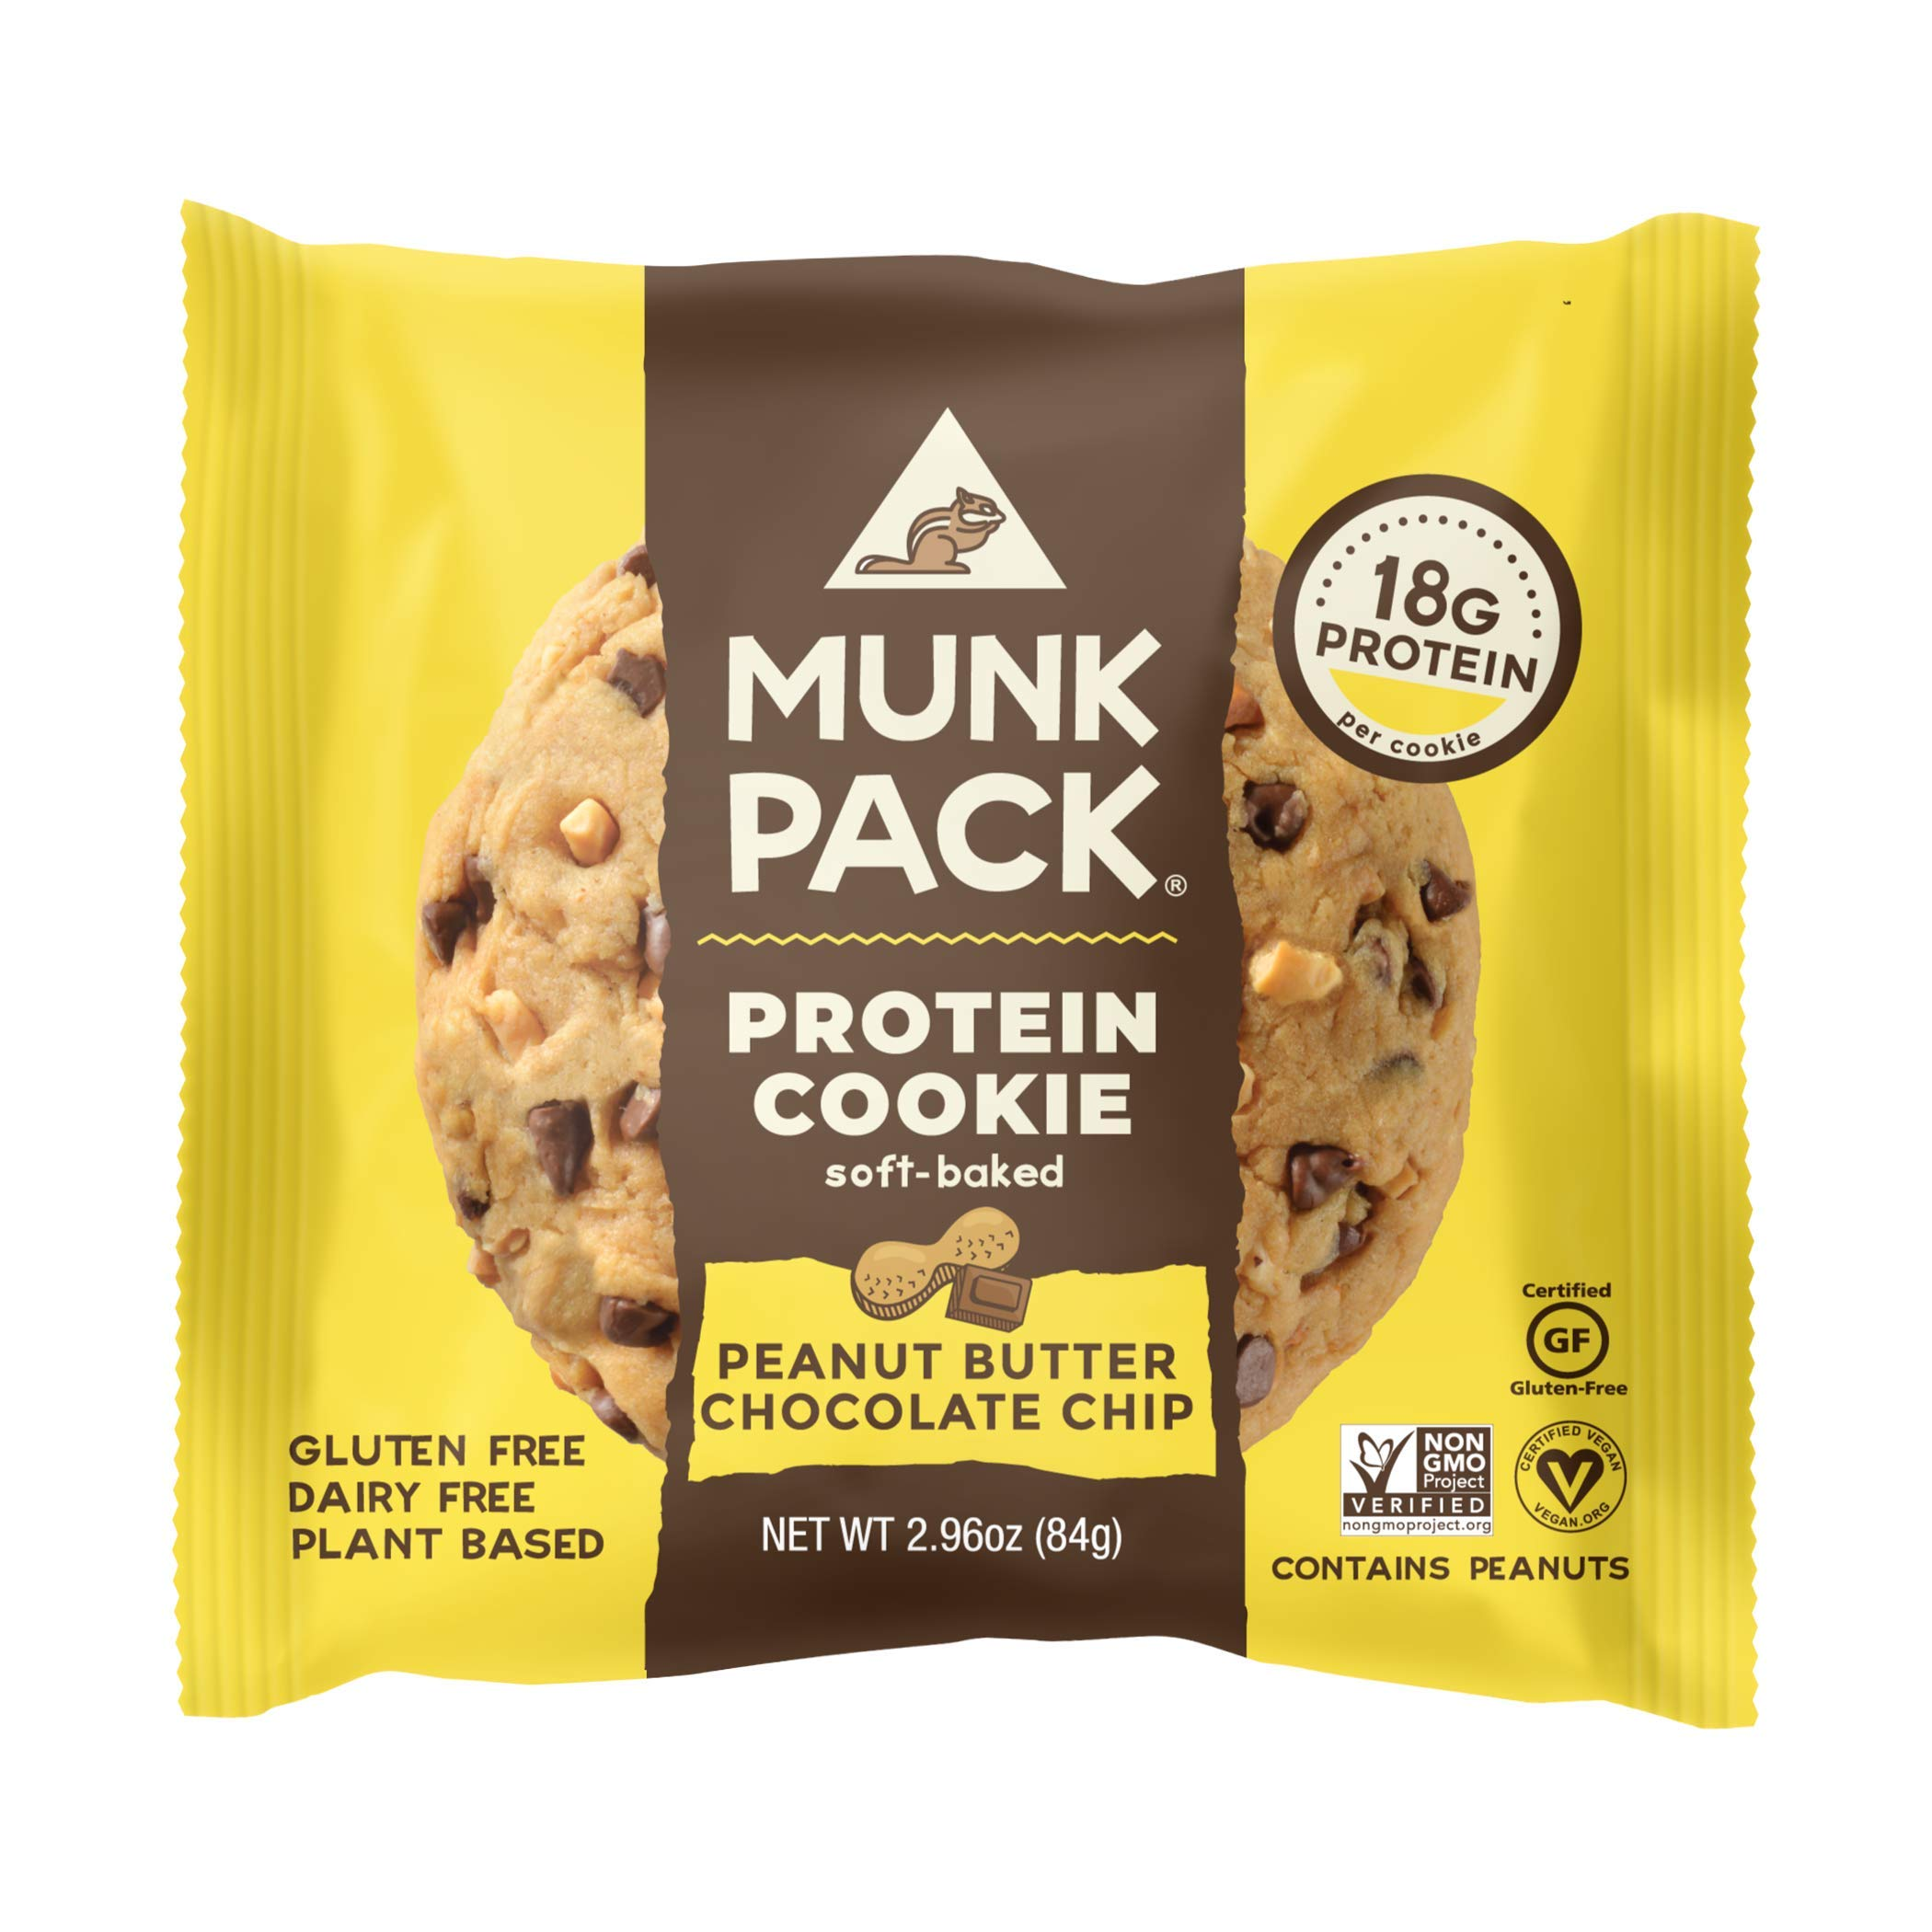 Munk Pack Vegan Protein Cookie | 18 Grams of Protein | Vegan, Gluten-Free, Dairy-Free, Soy-Free, Soft Baked | 2.96oz (Peanut Butter Chocolate Chip, Pack of 12)